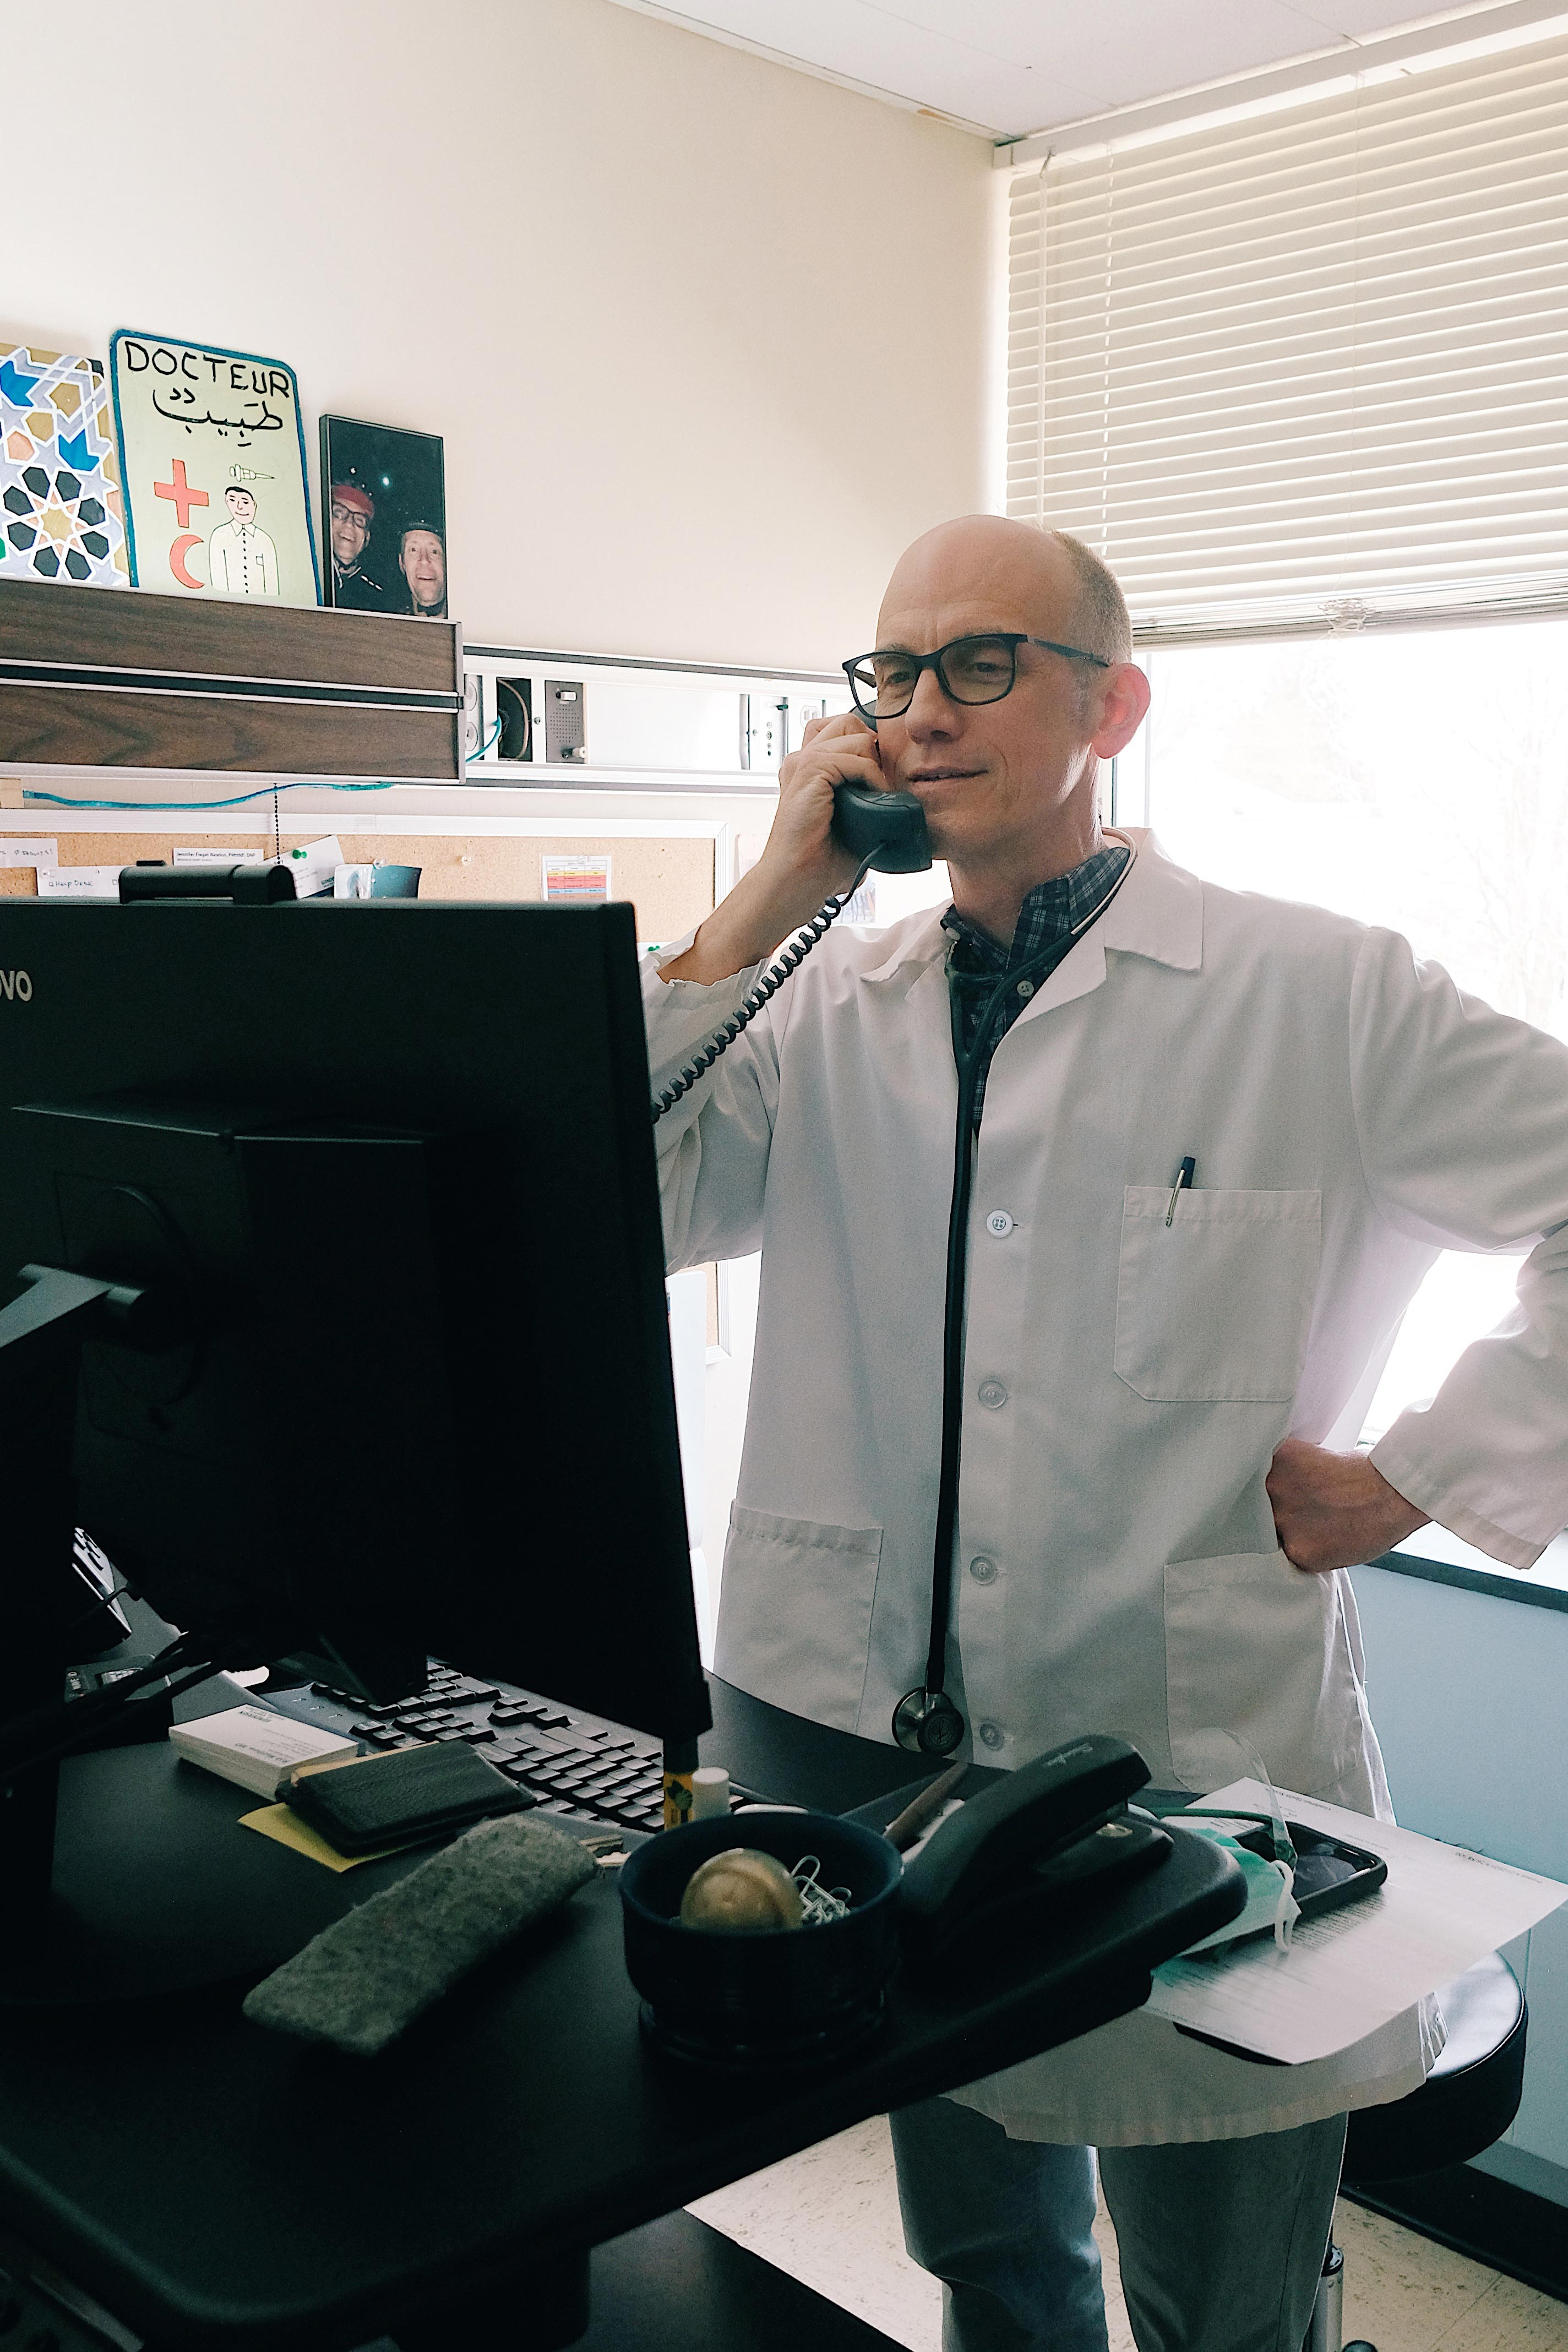 Doctor doing a phone visit